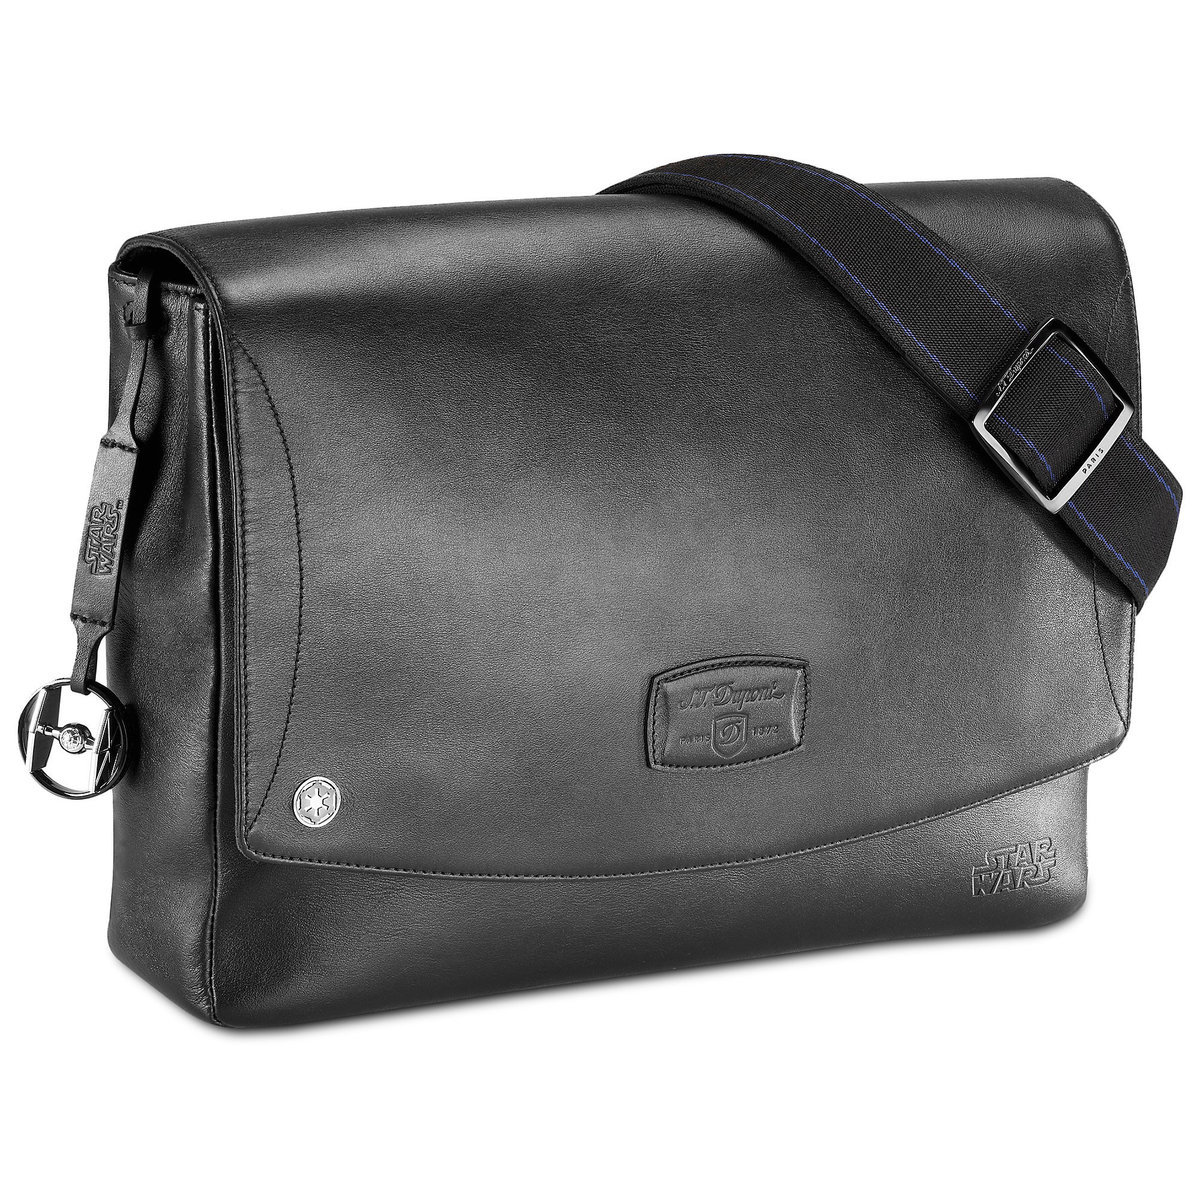 5c47fa5bd7 Product Image of TIE Fighter Messenger Bag by S.T. Dupont - Star Wars -  Limited Edition